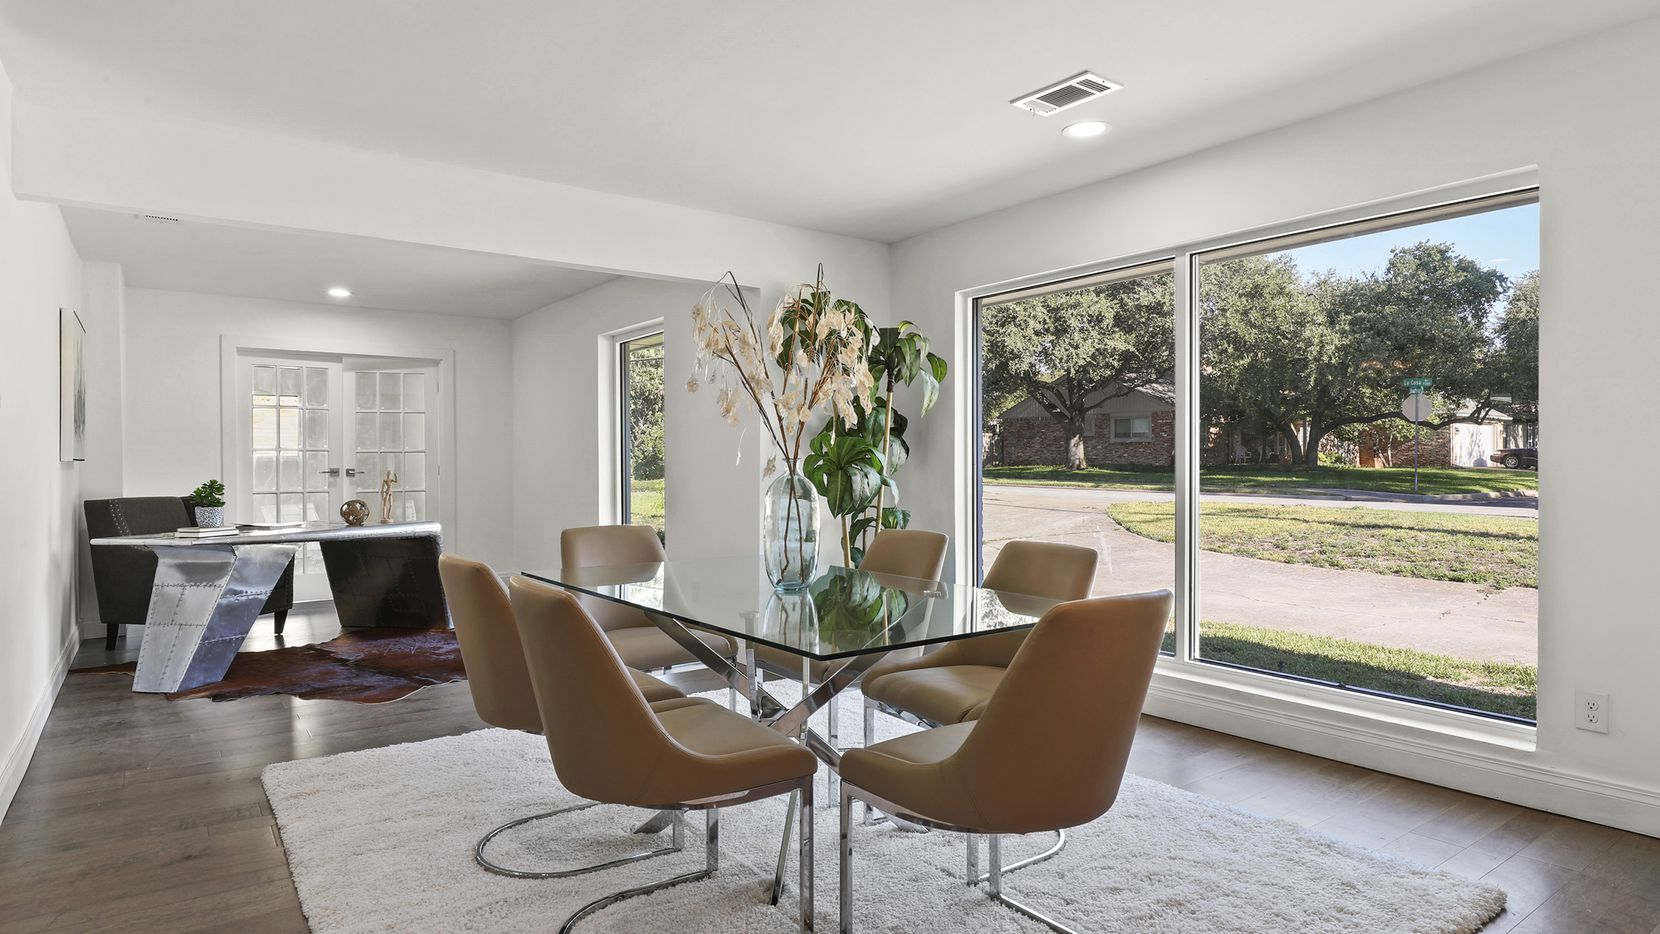 The three-bedroom contemporary-style design at 7326 La Cosa Drive in North Dallas has been reimagined with open spaces.